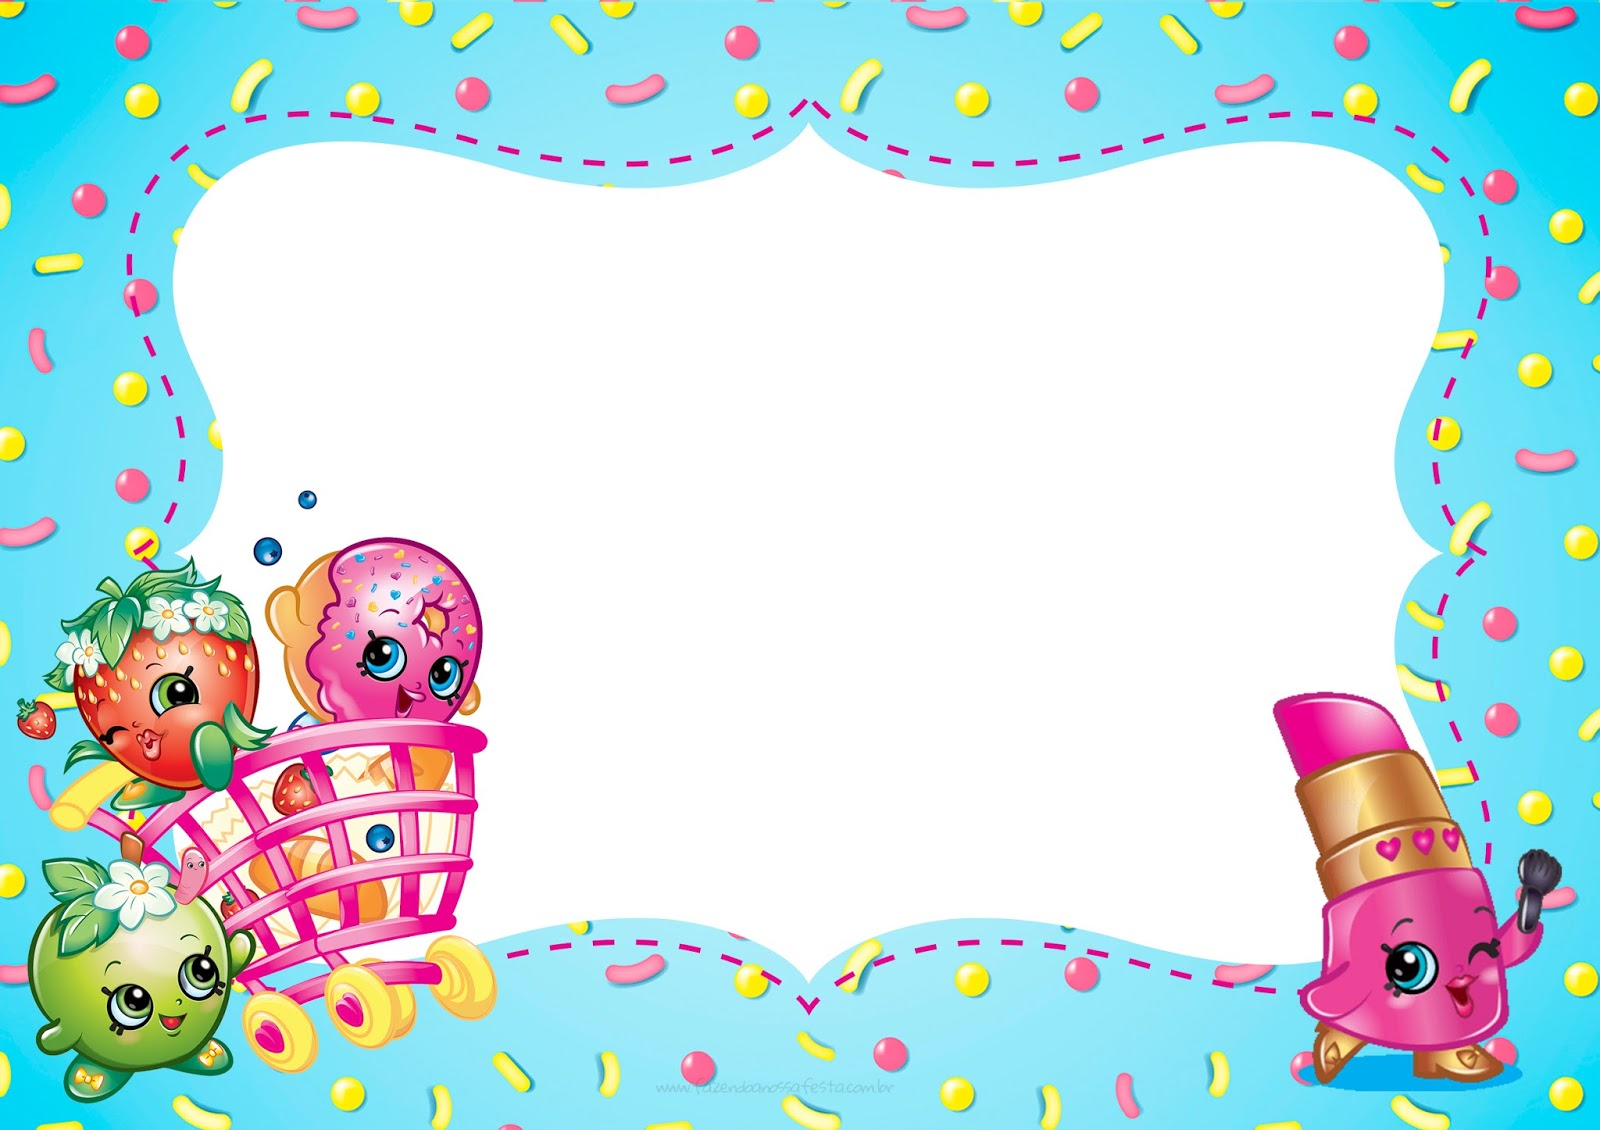 image relating to Shopkins Birthday Card Printable called Shopkins: Cost-free Printable Invites. - Oh My Fiesta! inside english